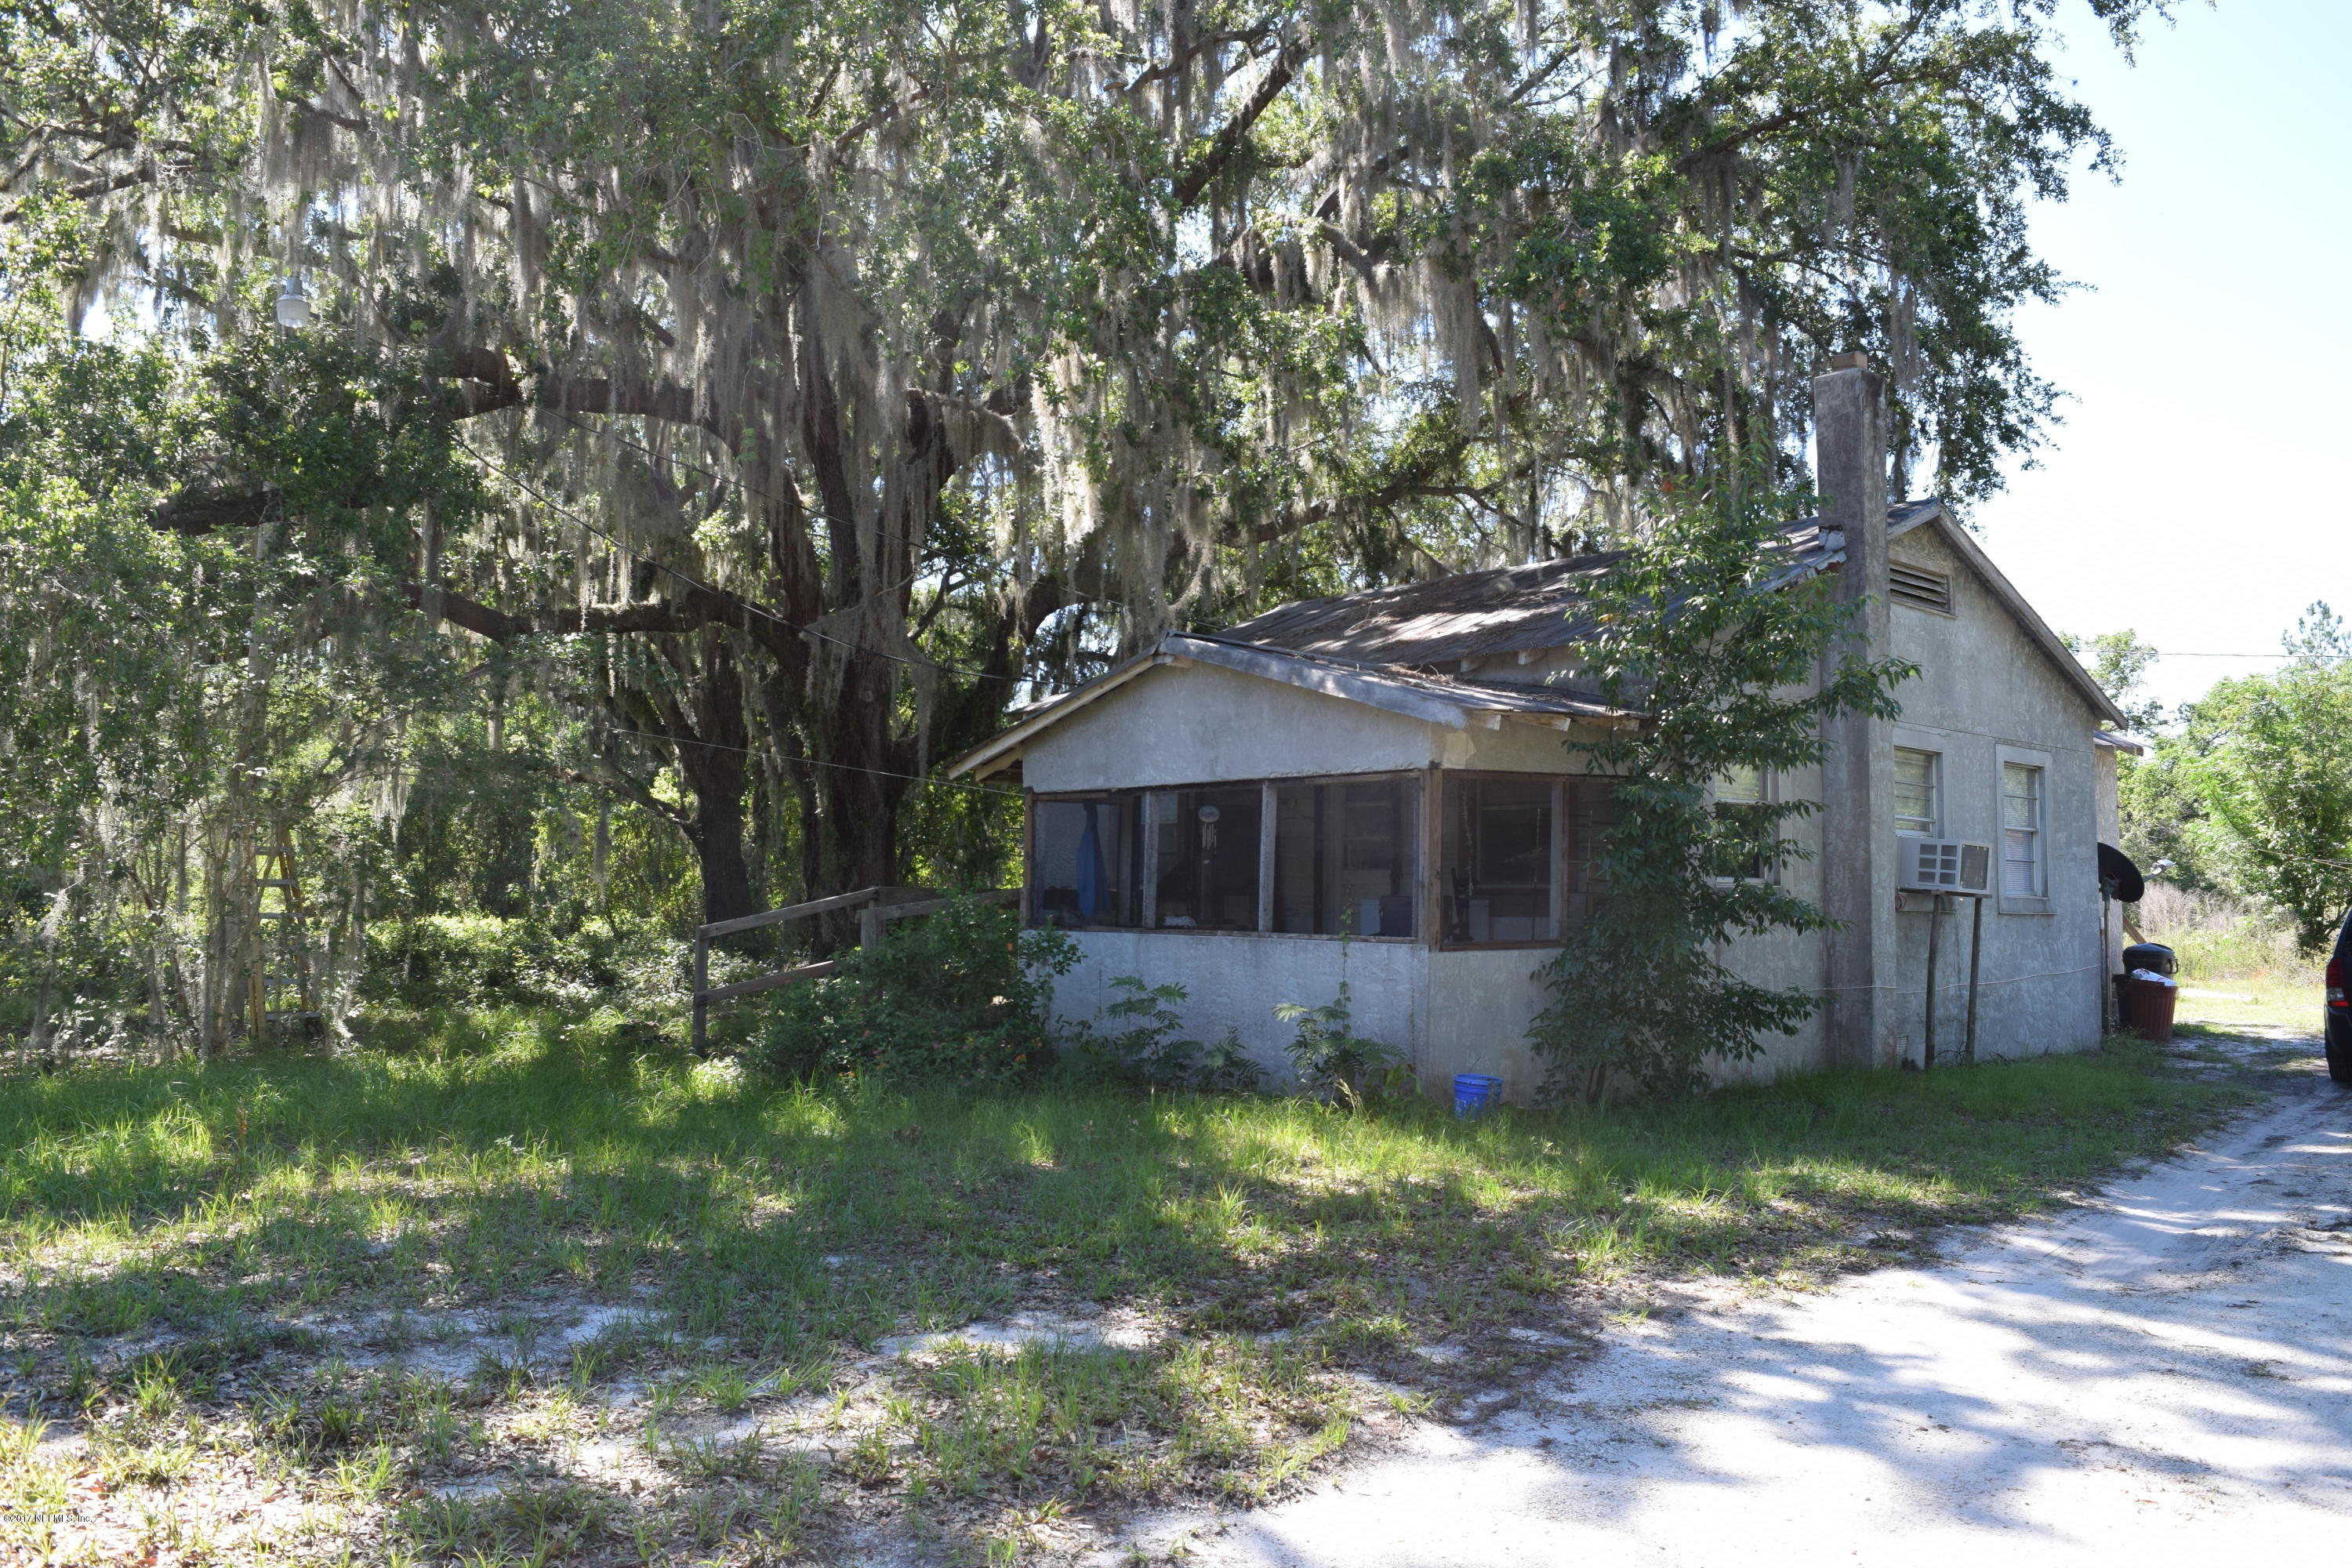 141 GUTHRIE, GREEN COVE SPRINGS, FLORIDA 32043, 2 Bedrooms Bedrooms, ,1 BathroomBathrooms,Residential - single family,For sale,GUTHRIE,884045